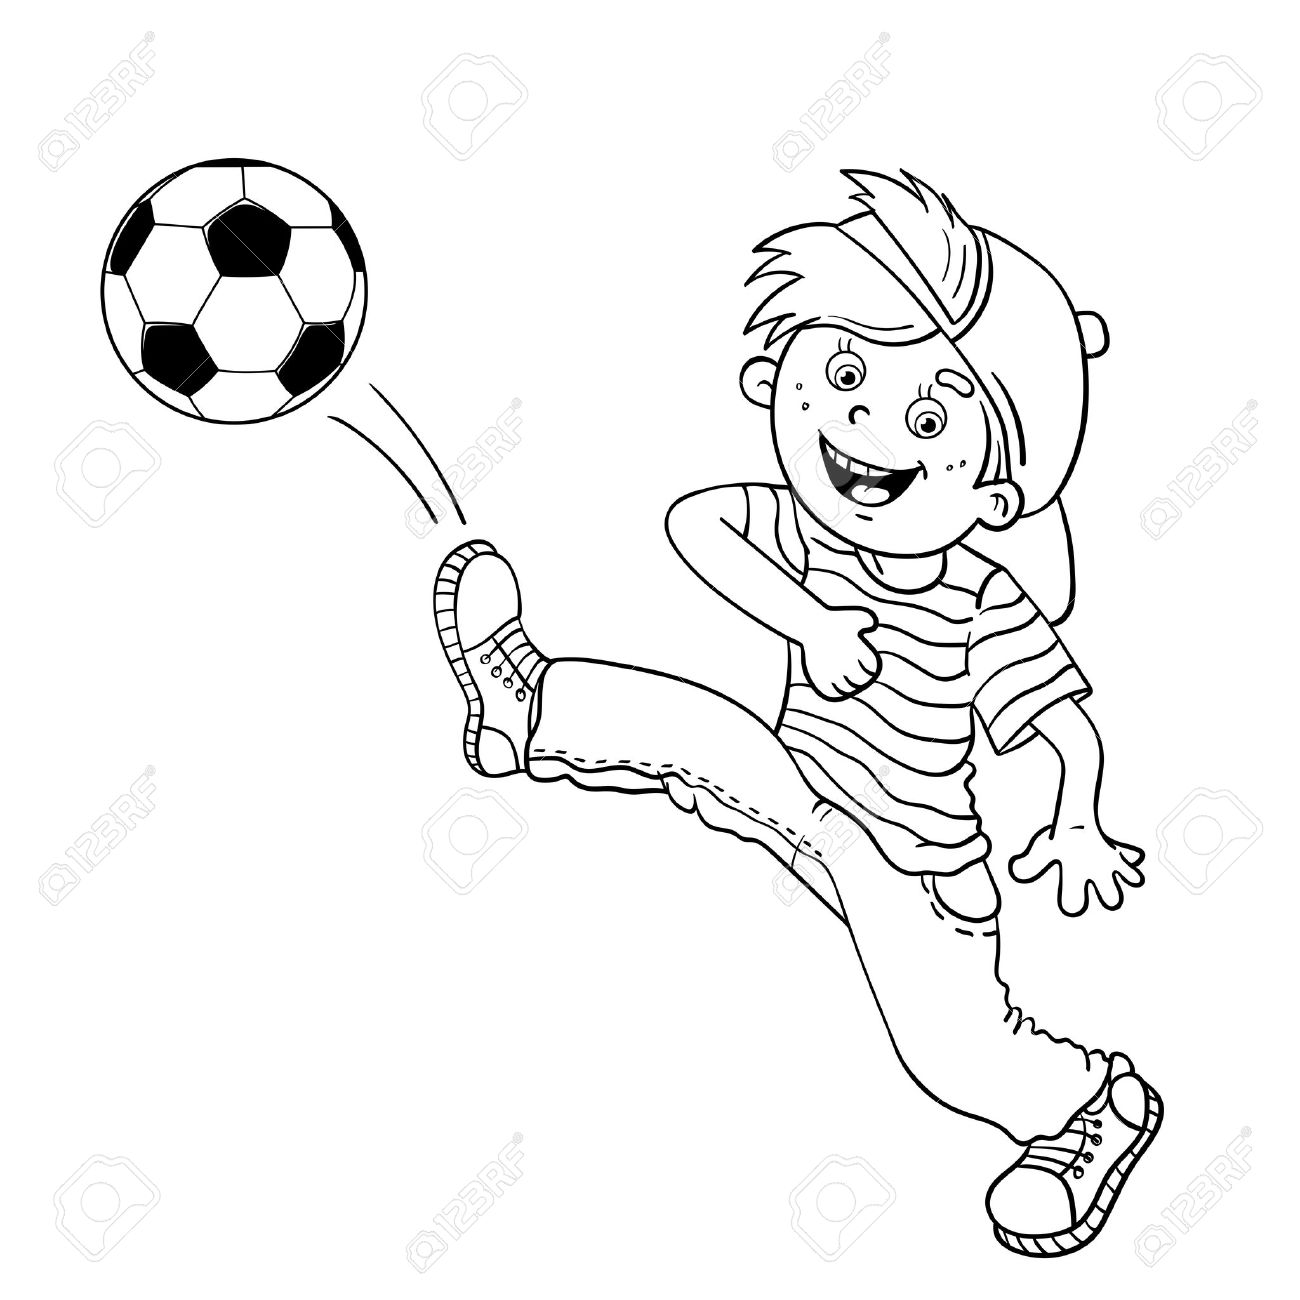 Coloring Page Outline Of A Cartoon Boy Kicking Soccer Ball Stock Vector